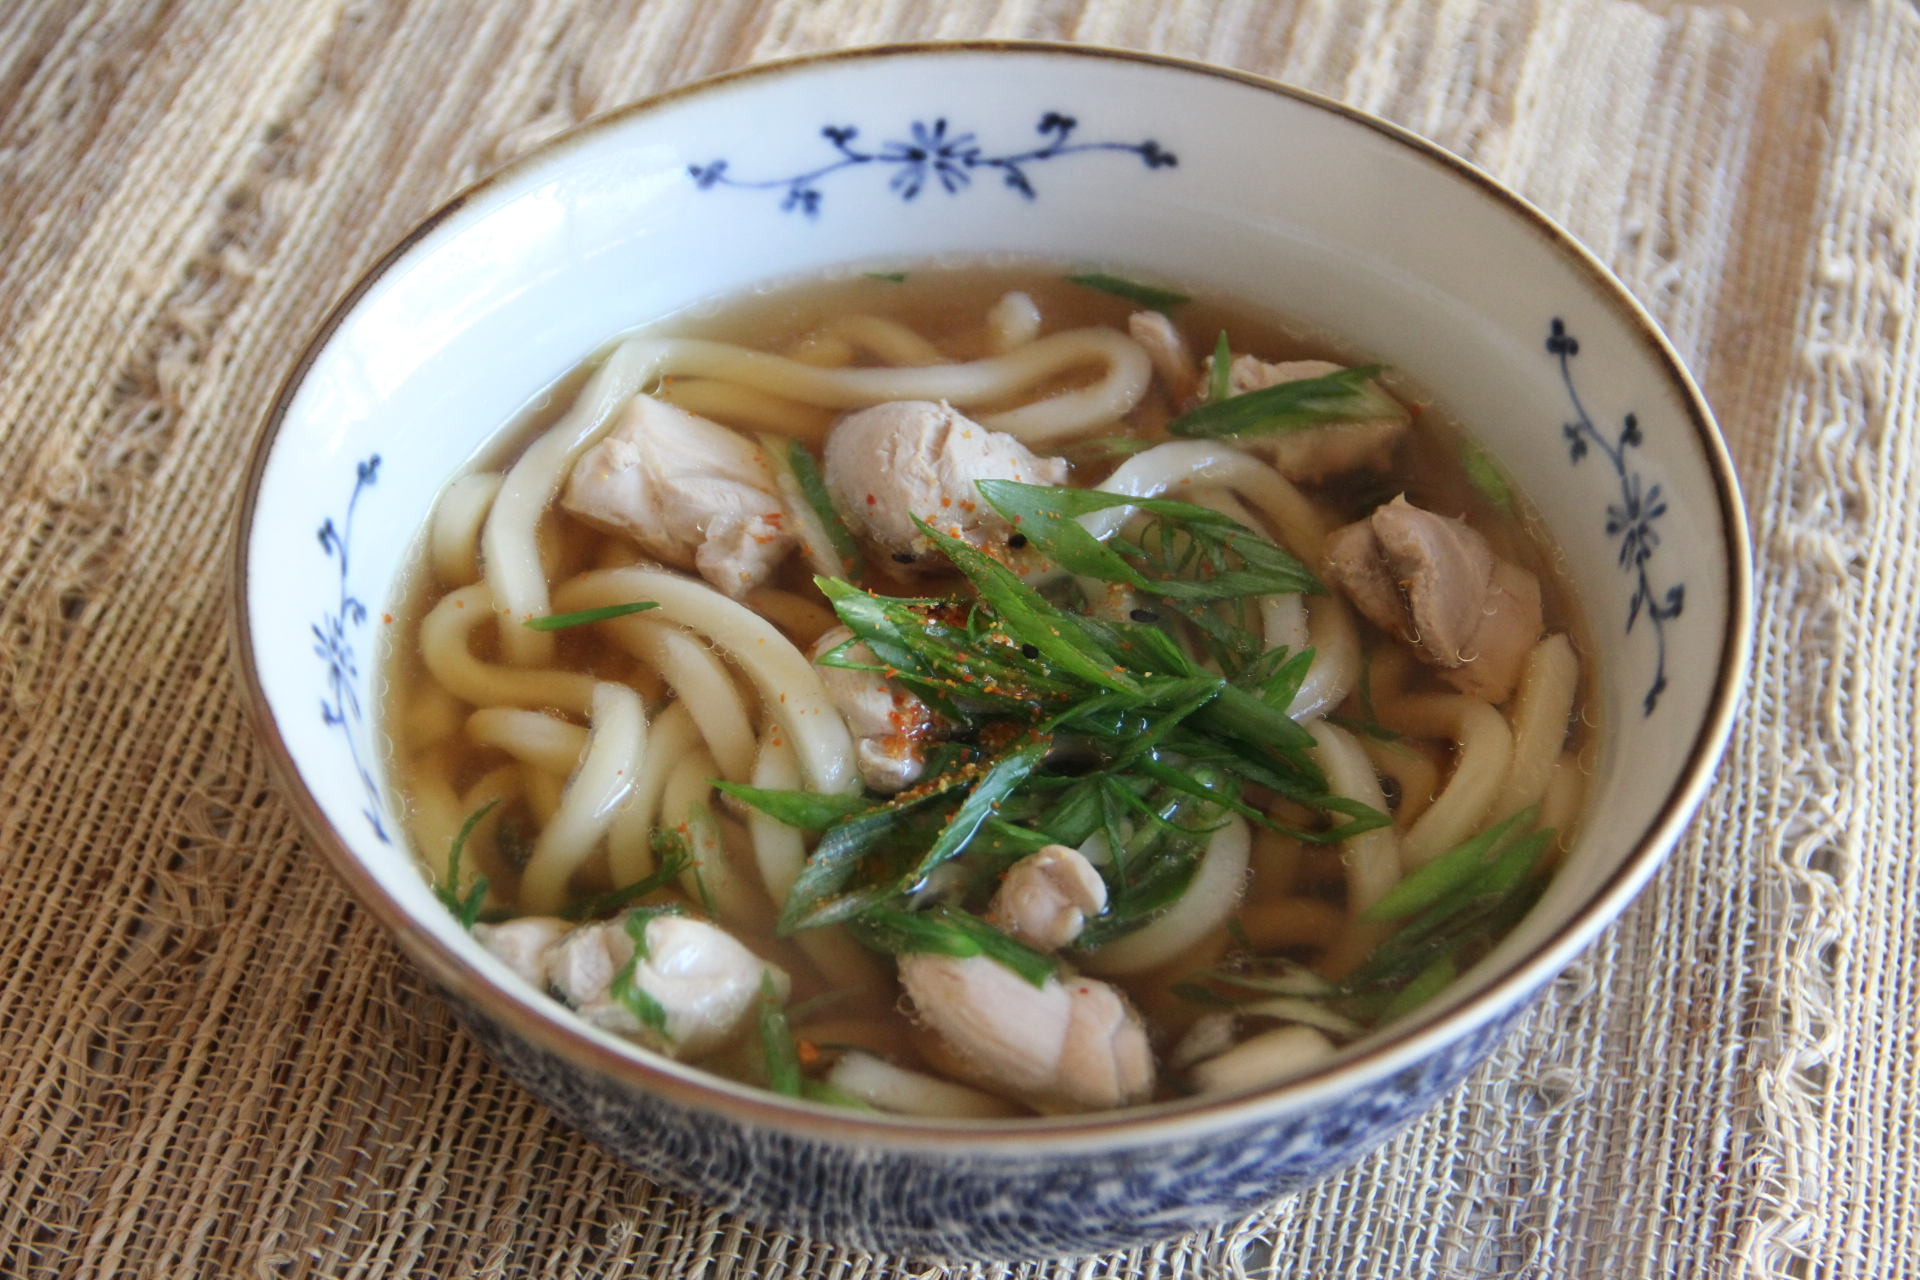 Chicken Udon Noodles Recipe Japanese Cooking 101